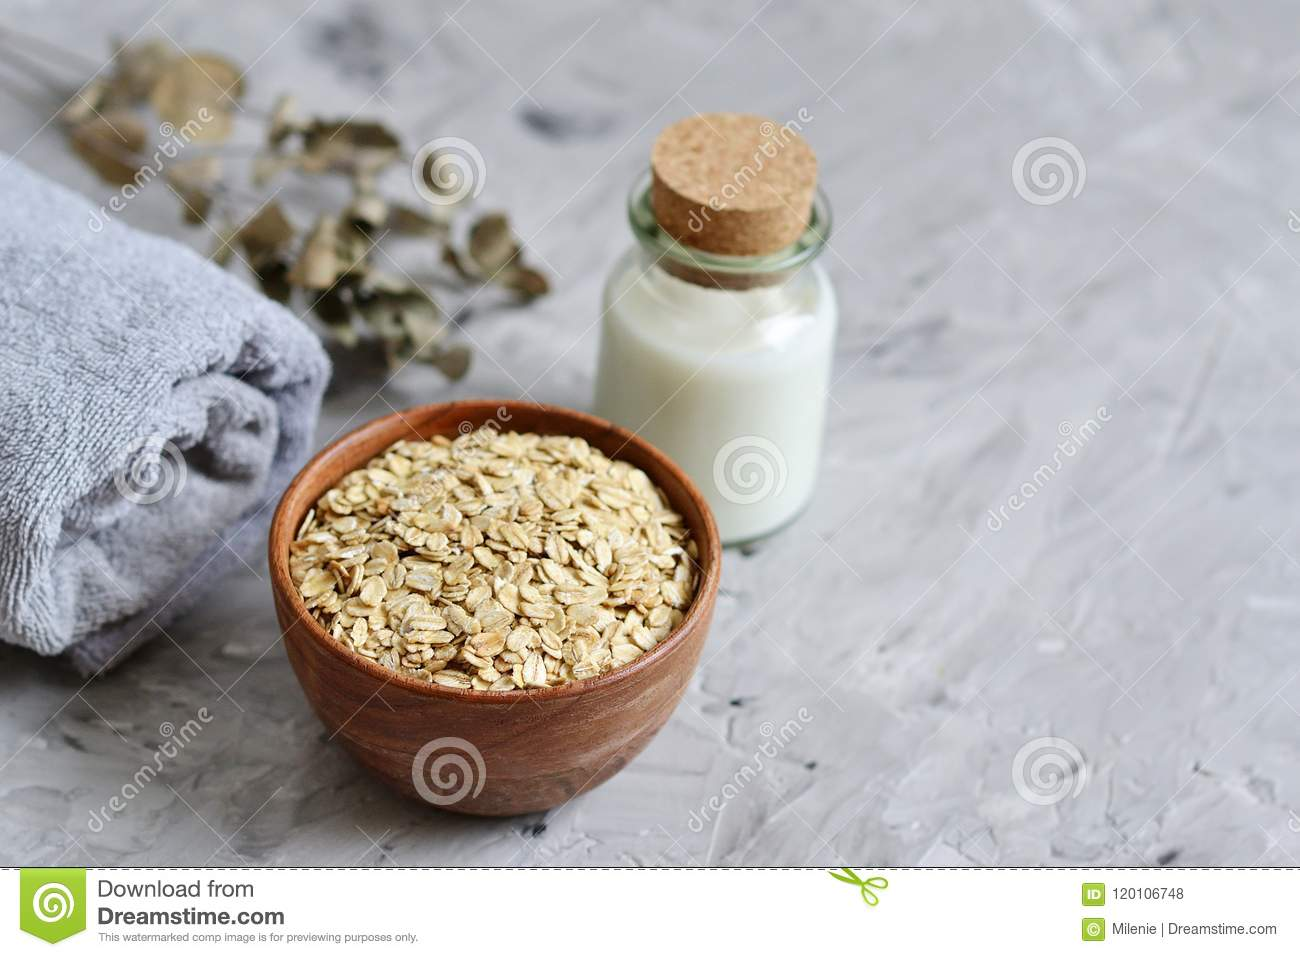 Natural Ingredients for Homemade Oatmeal Milk Body Face Scrub Beauty Concept